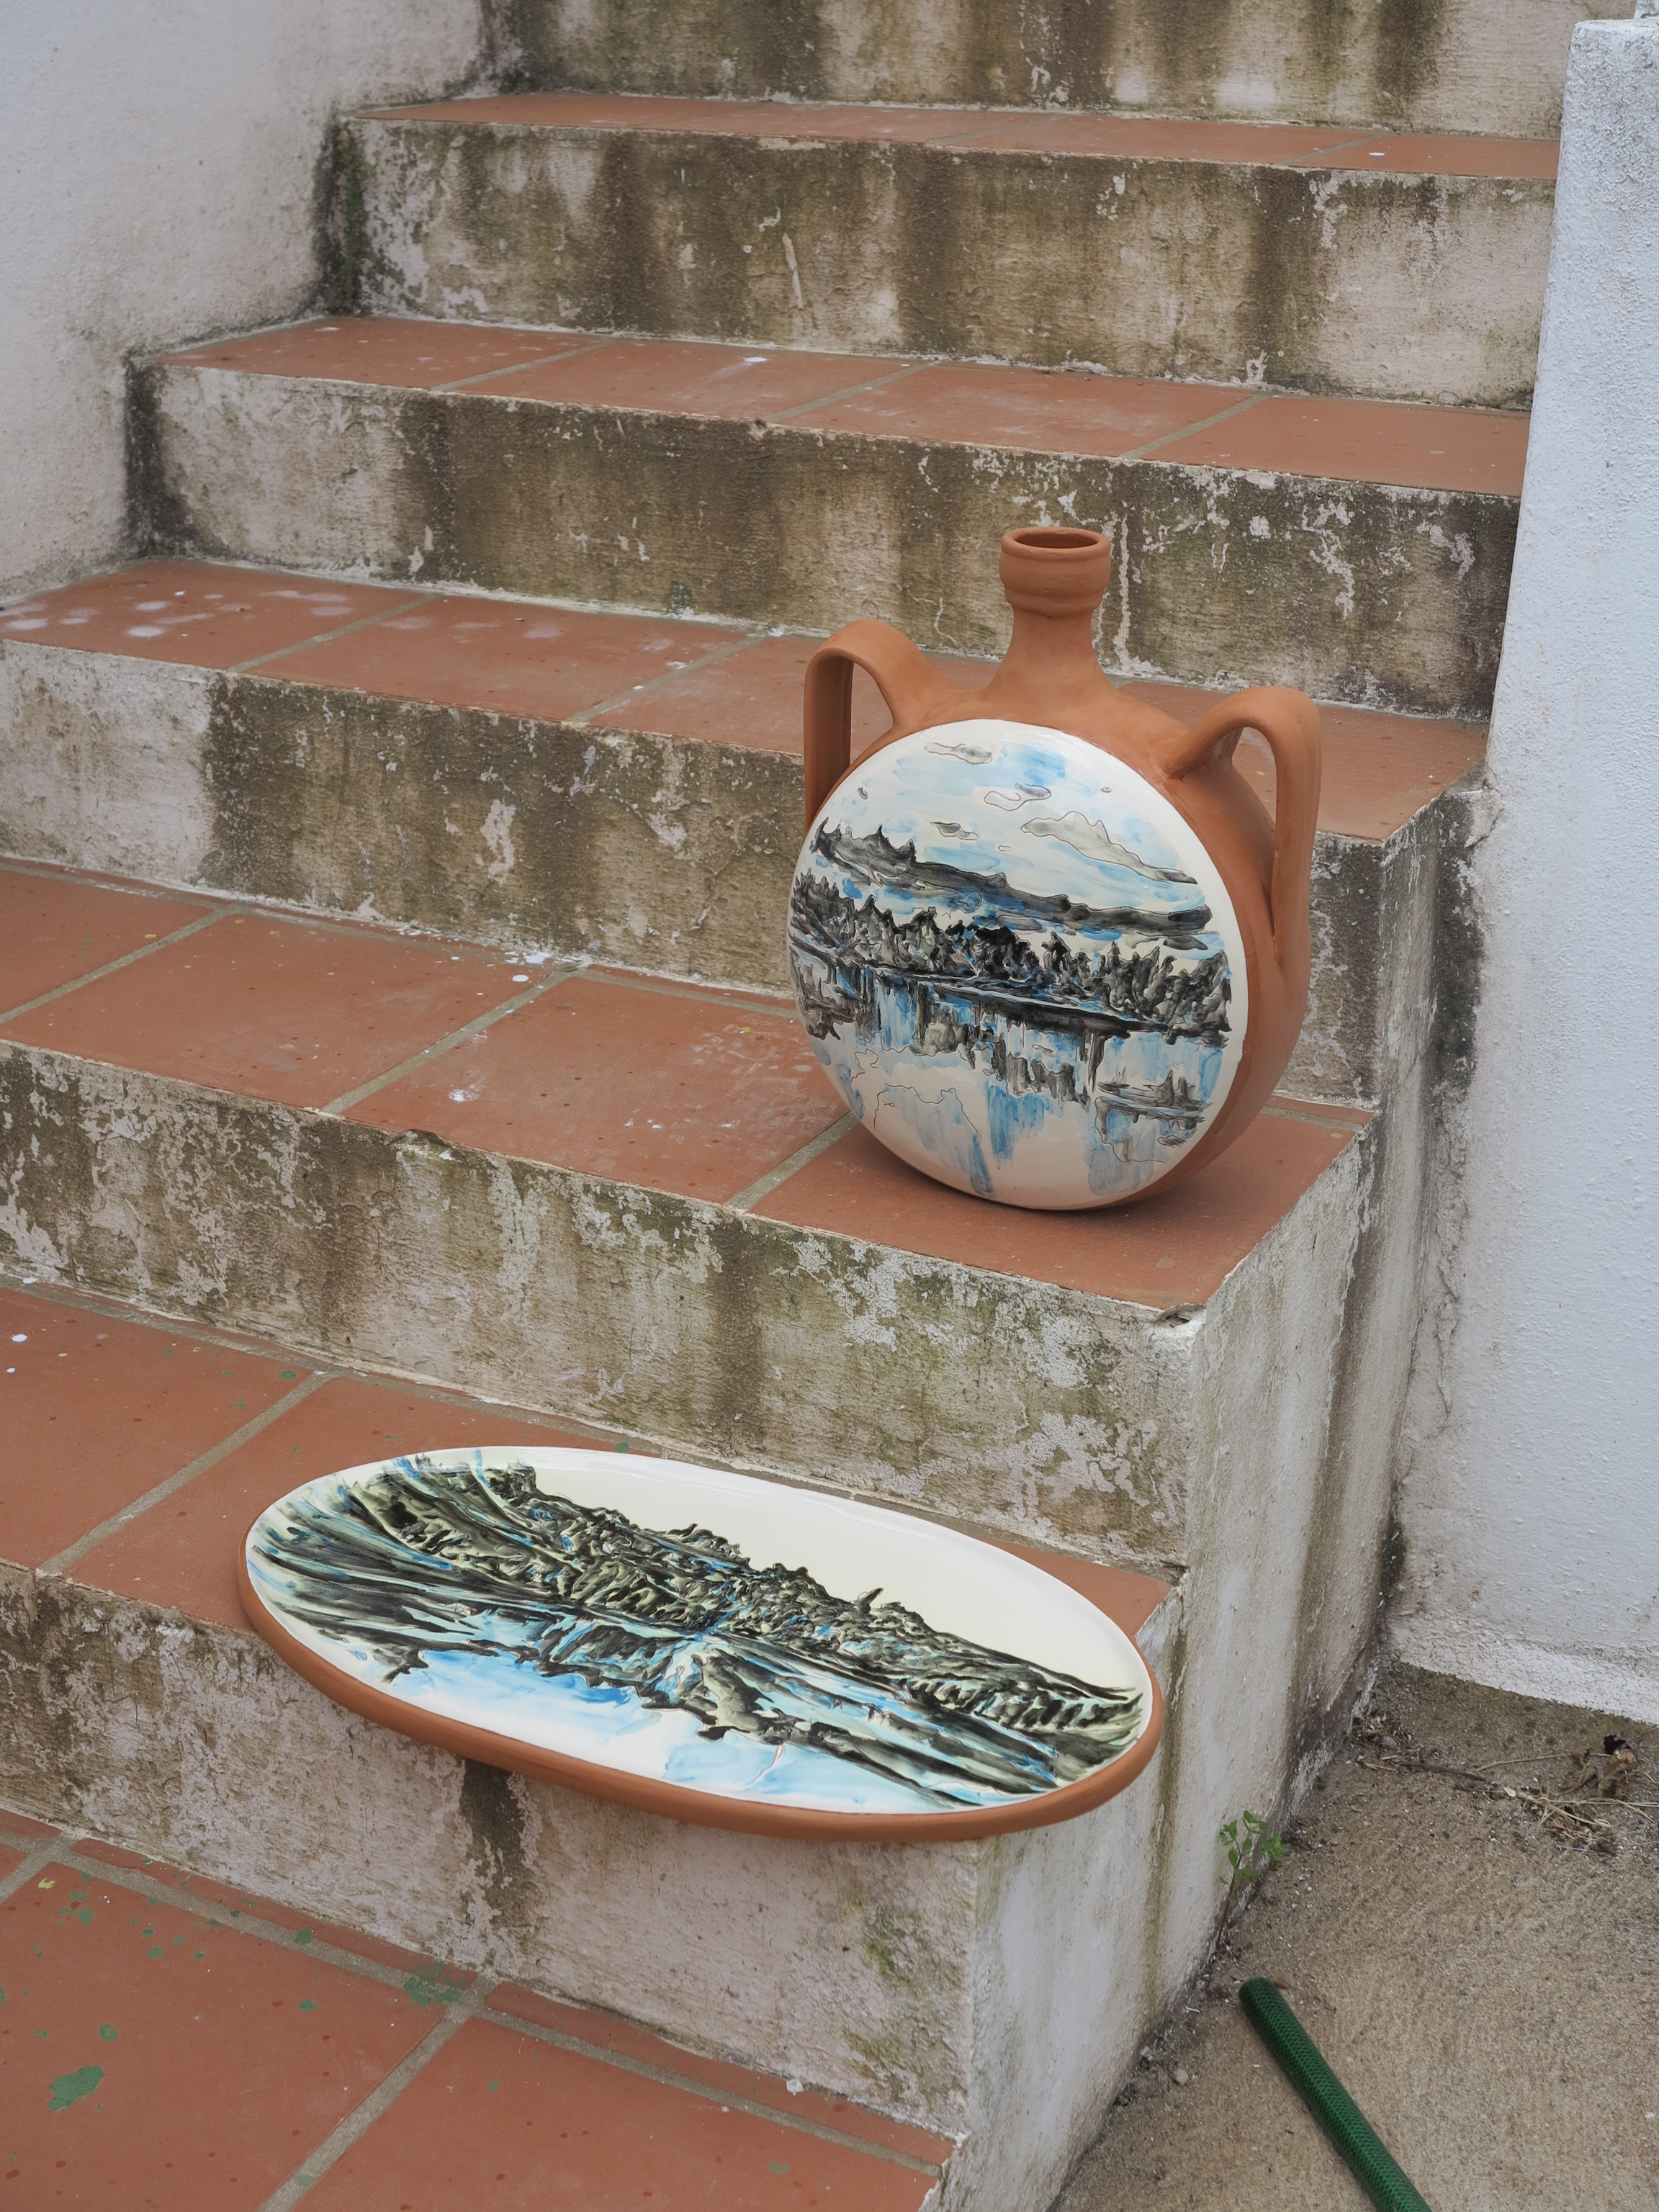 """Standing """"Barril"""", ceramic, two sides painted, 40 cm. high & """"Inverno"""" painted ceramic tile, 30 x 57 cm., Portugal 2016 - 2017"""